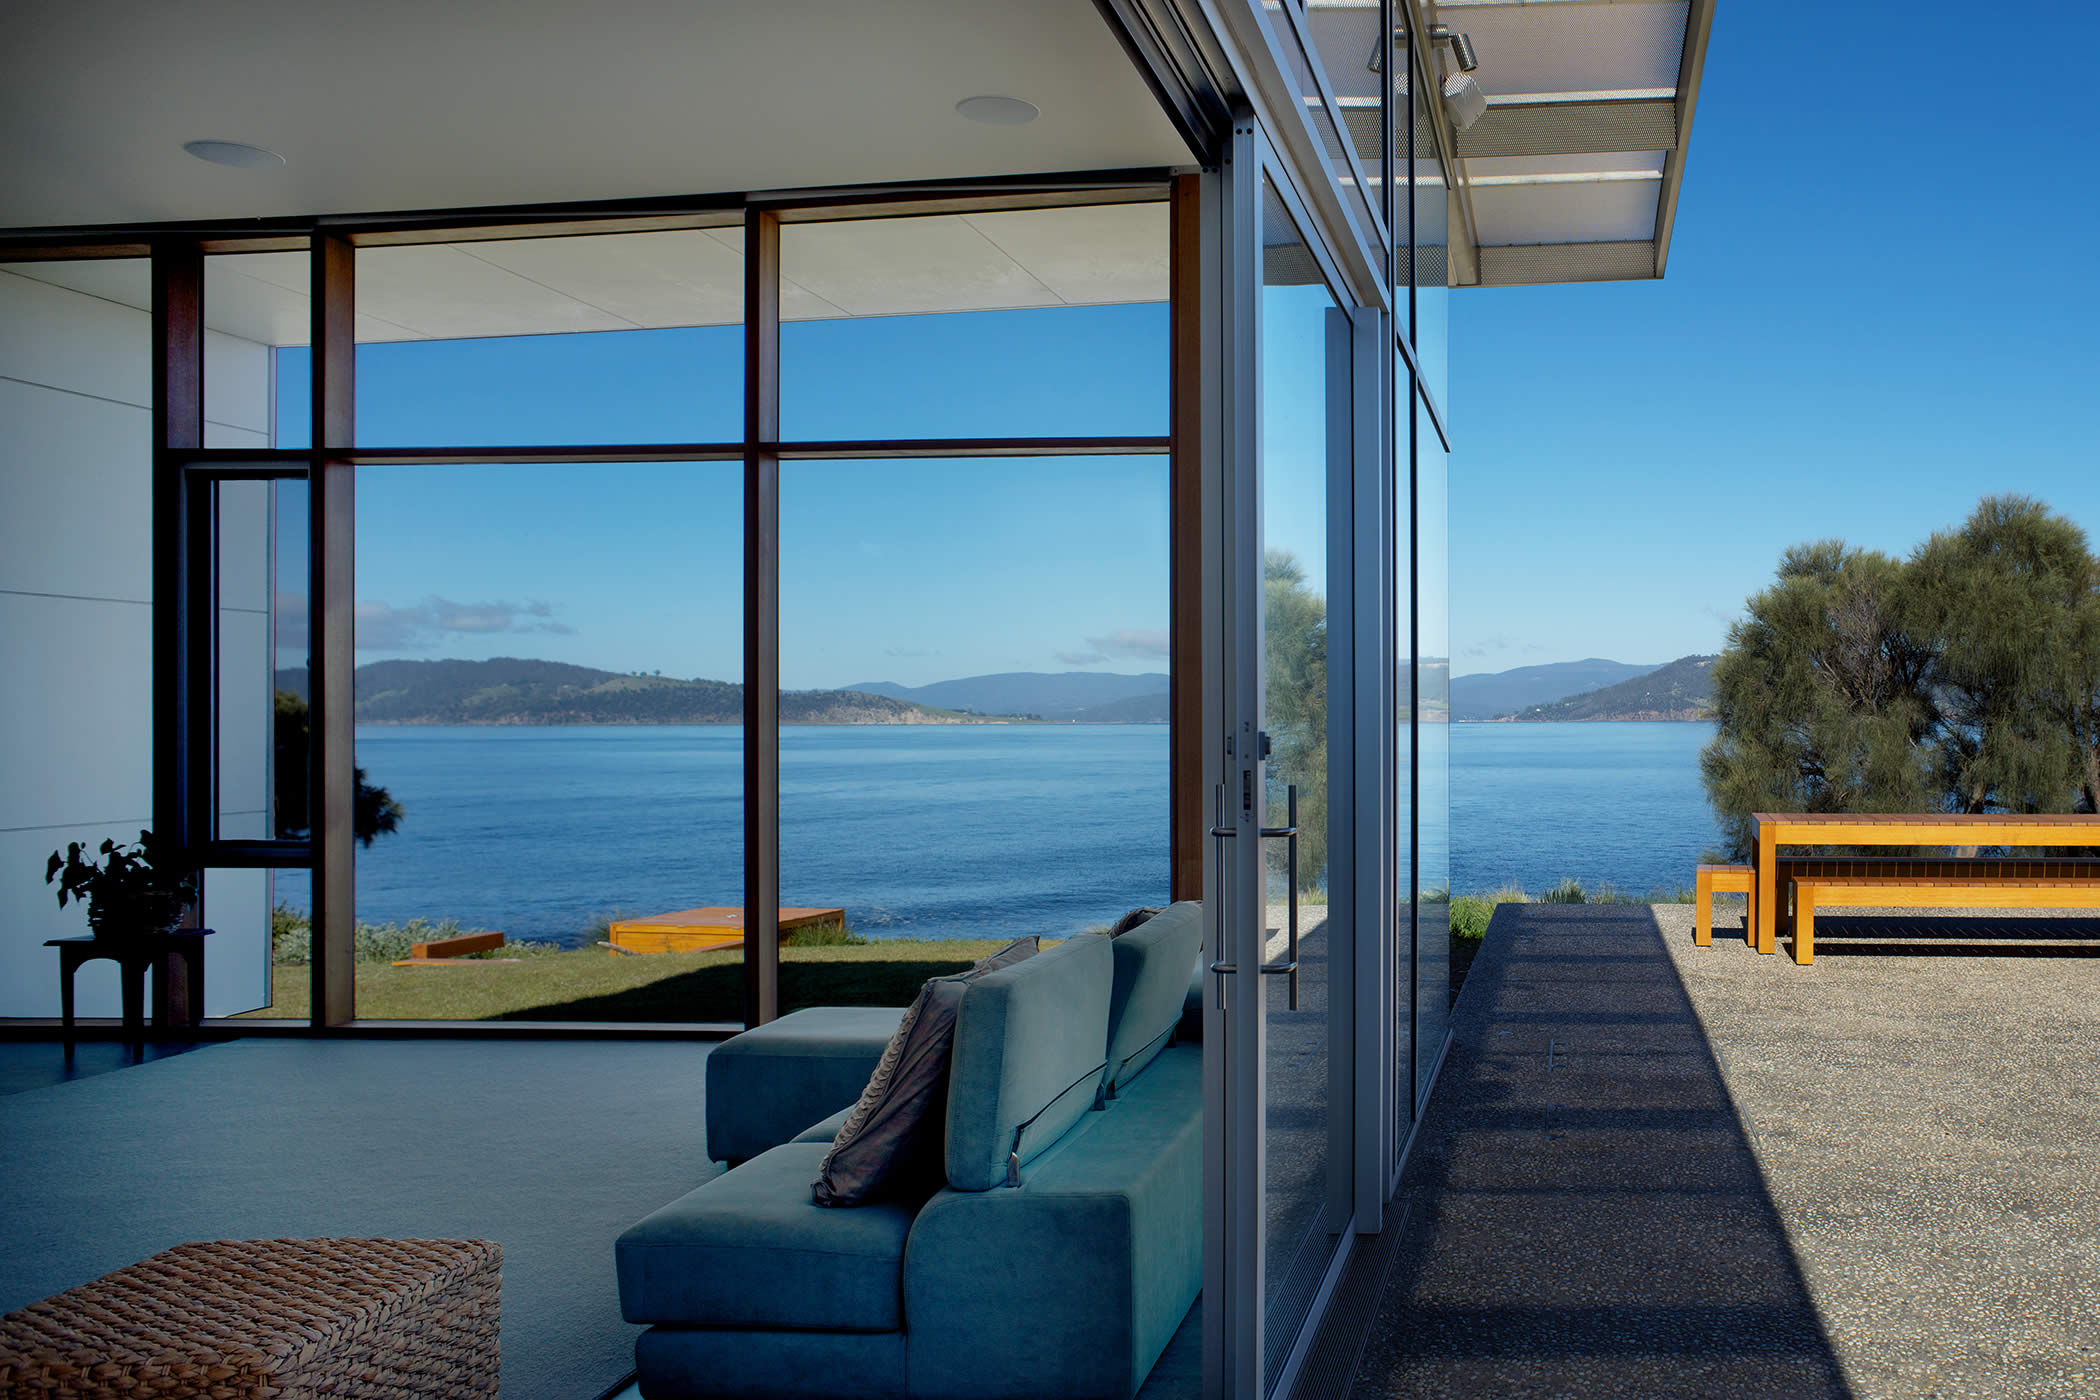 Johns Point residence, South Arm, Tasmania: The design incorporates breathtaking views, an easy indoor-outdoor relationship, flexible use, universal access, passive solar thermal comfort and sustainable energy efficiencies. Photo by Ray Joyce.